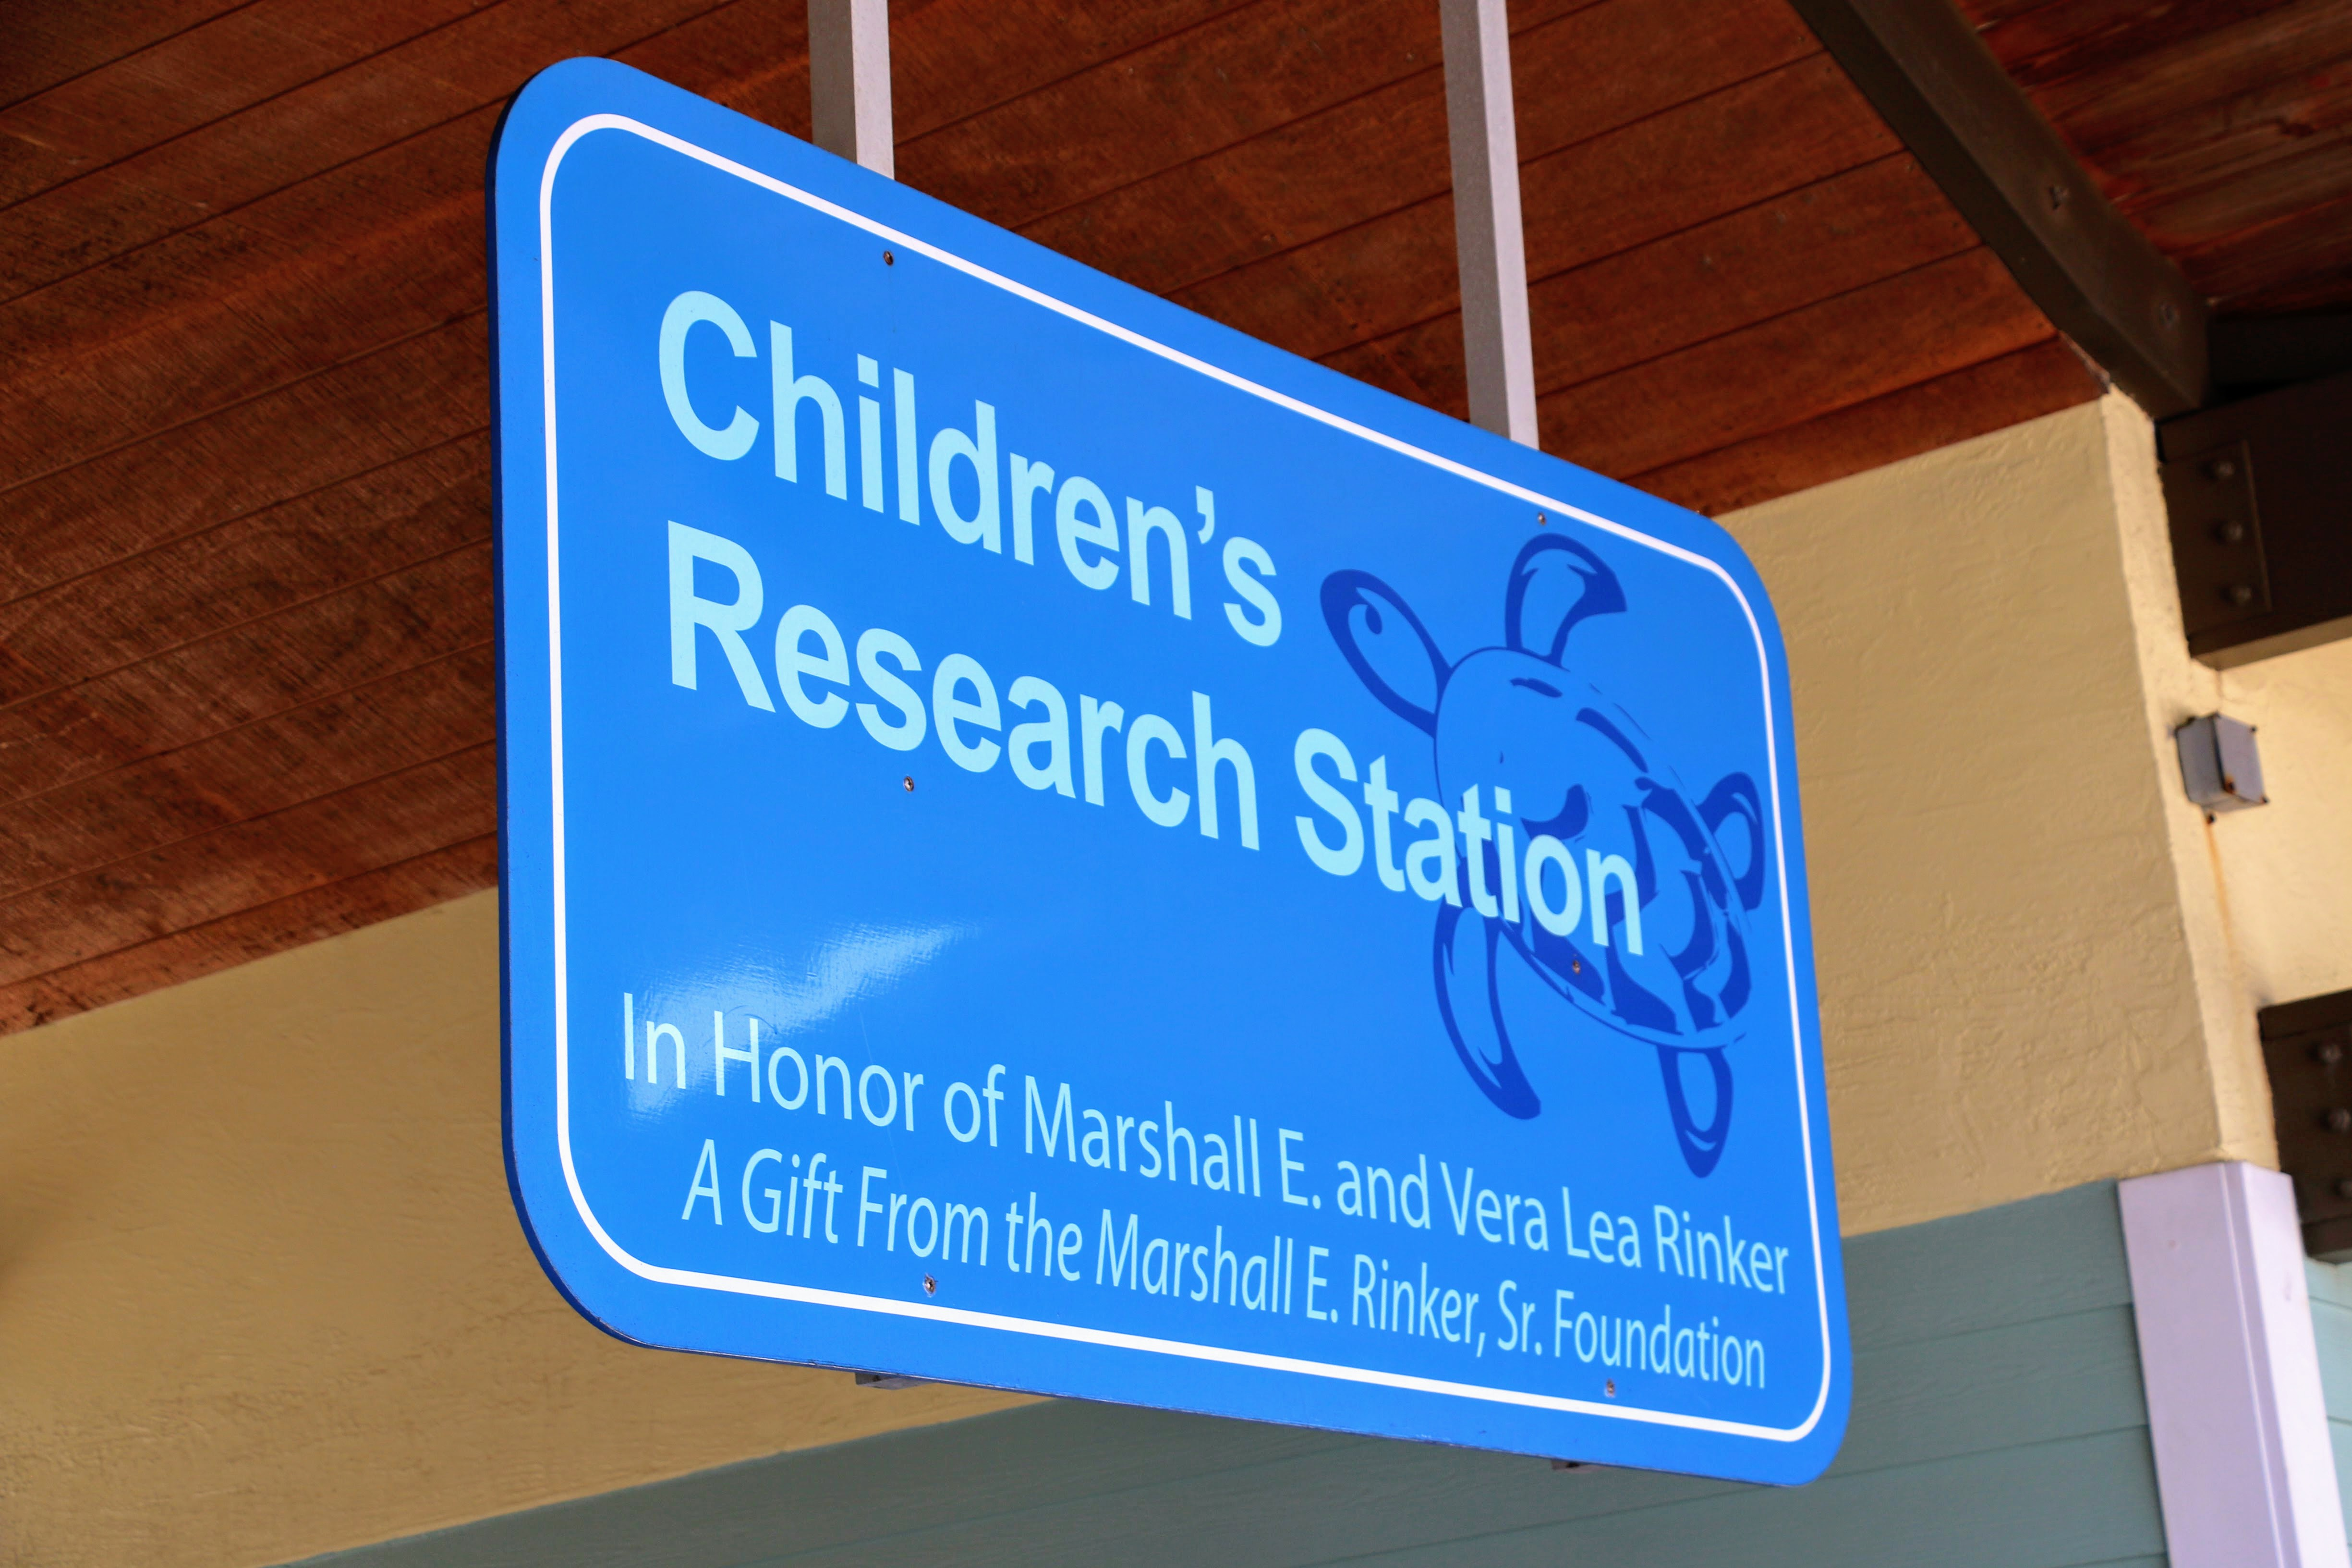 Children's Research Station - Florida met kind